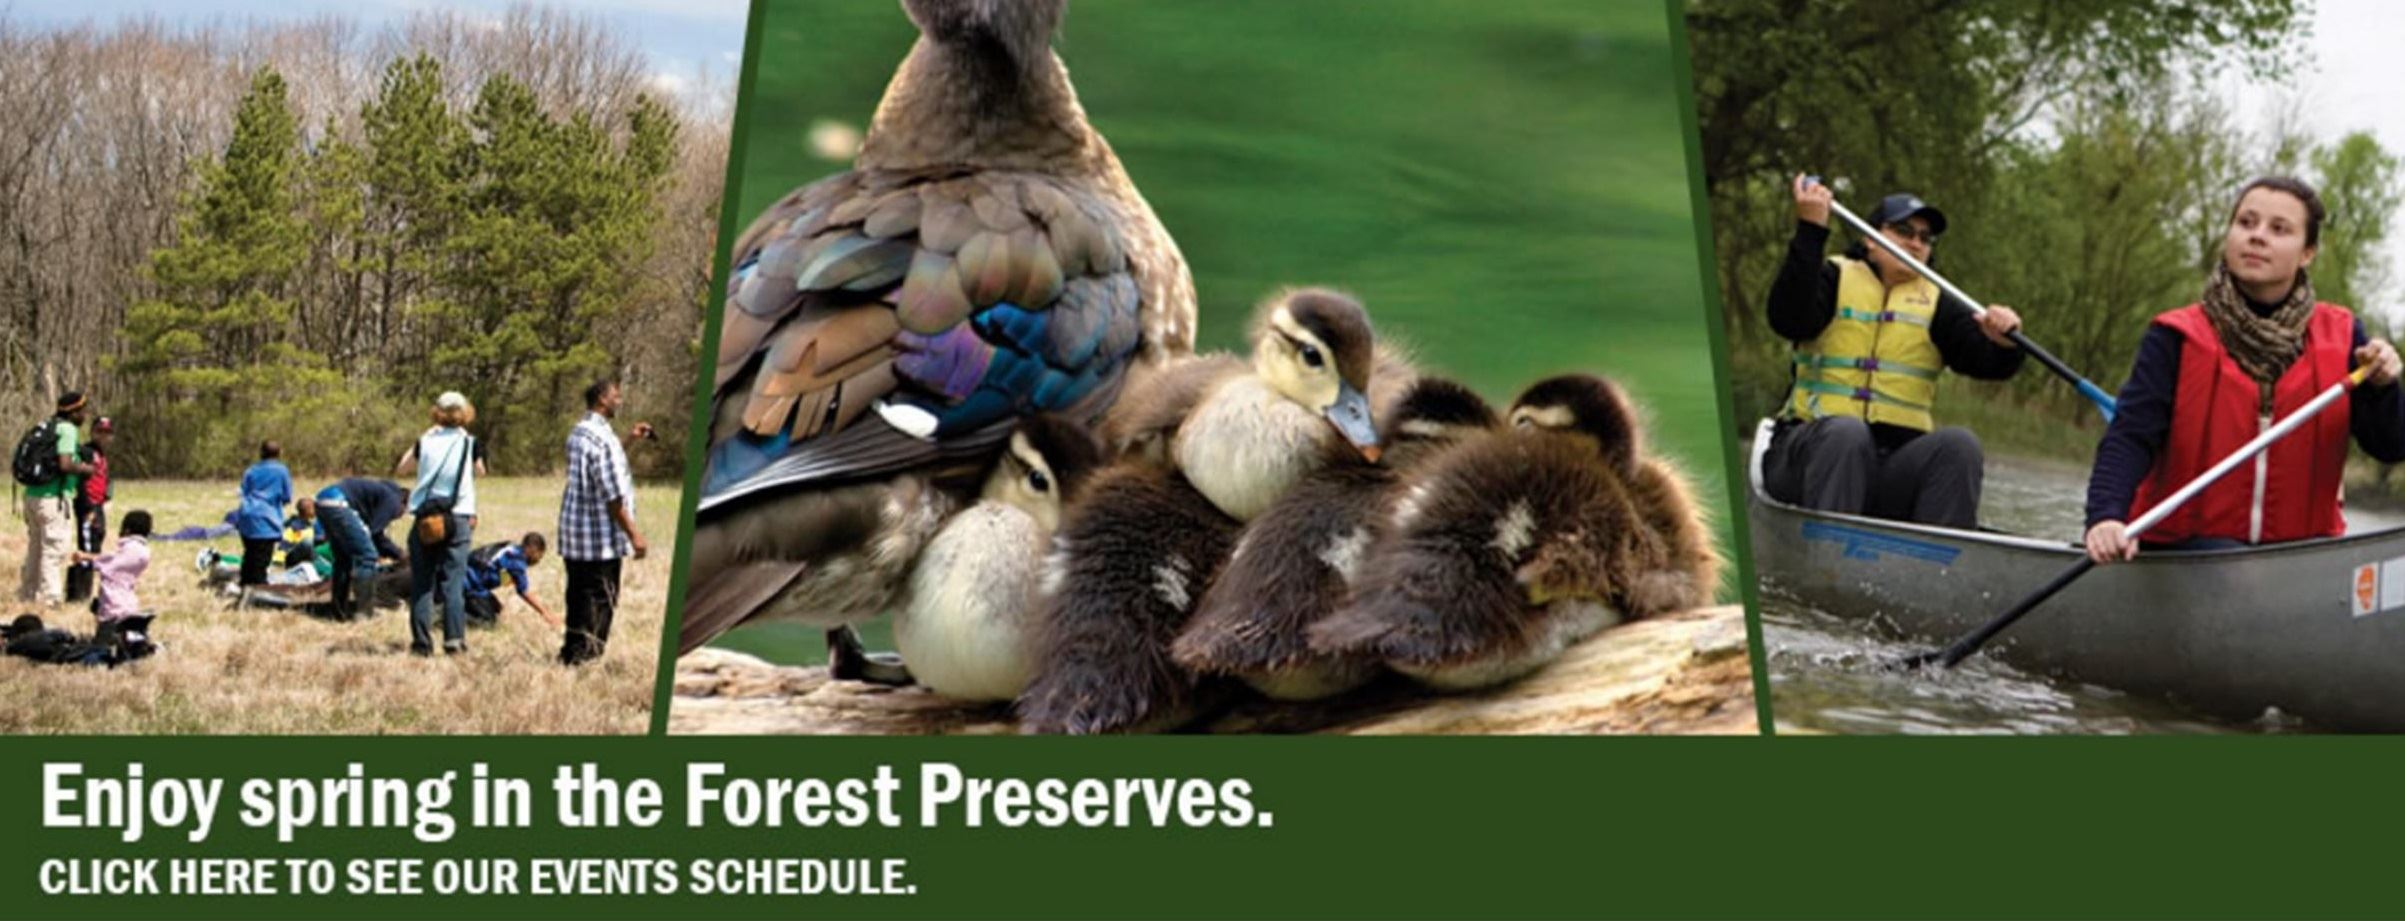 Forest Preserve District of Cook County Spring Events